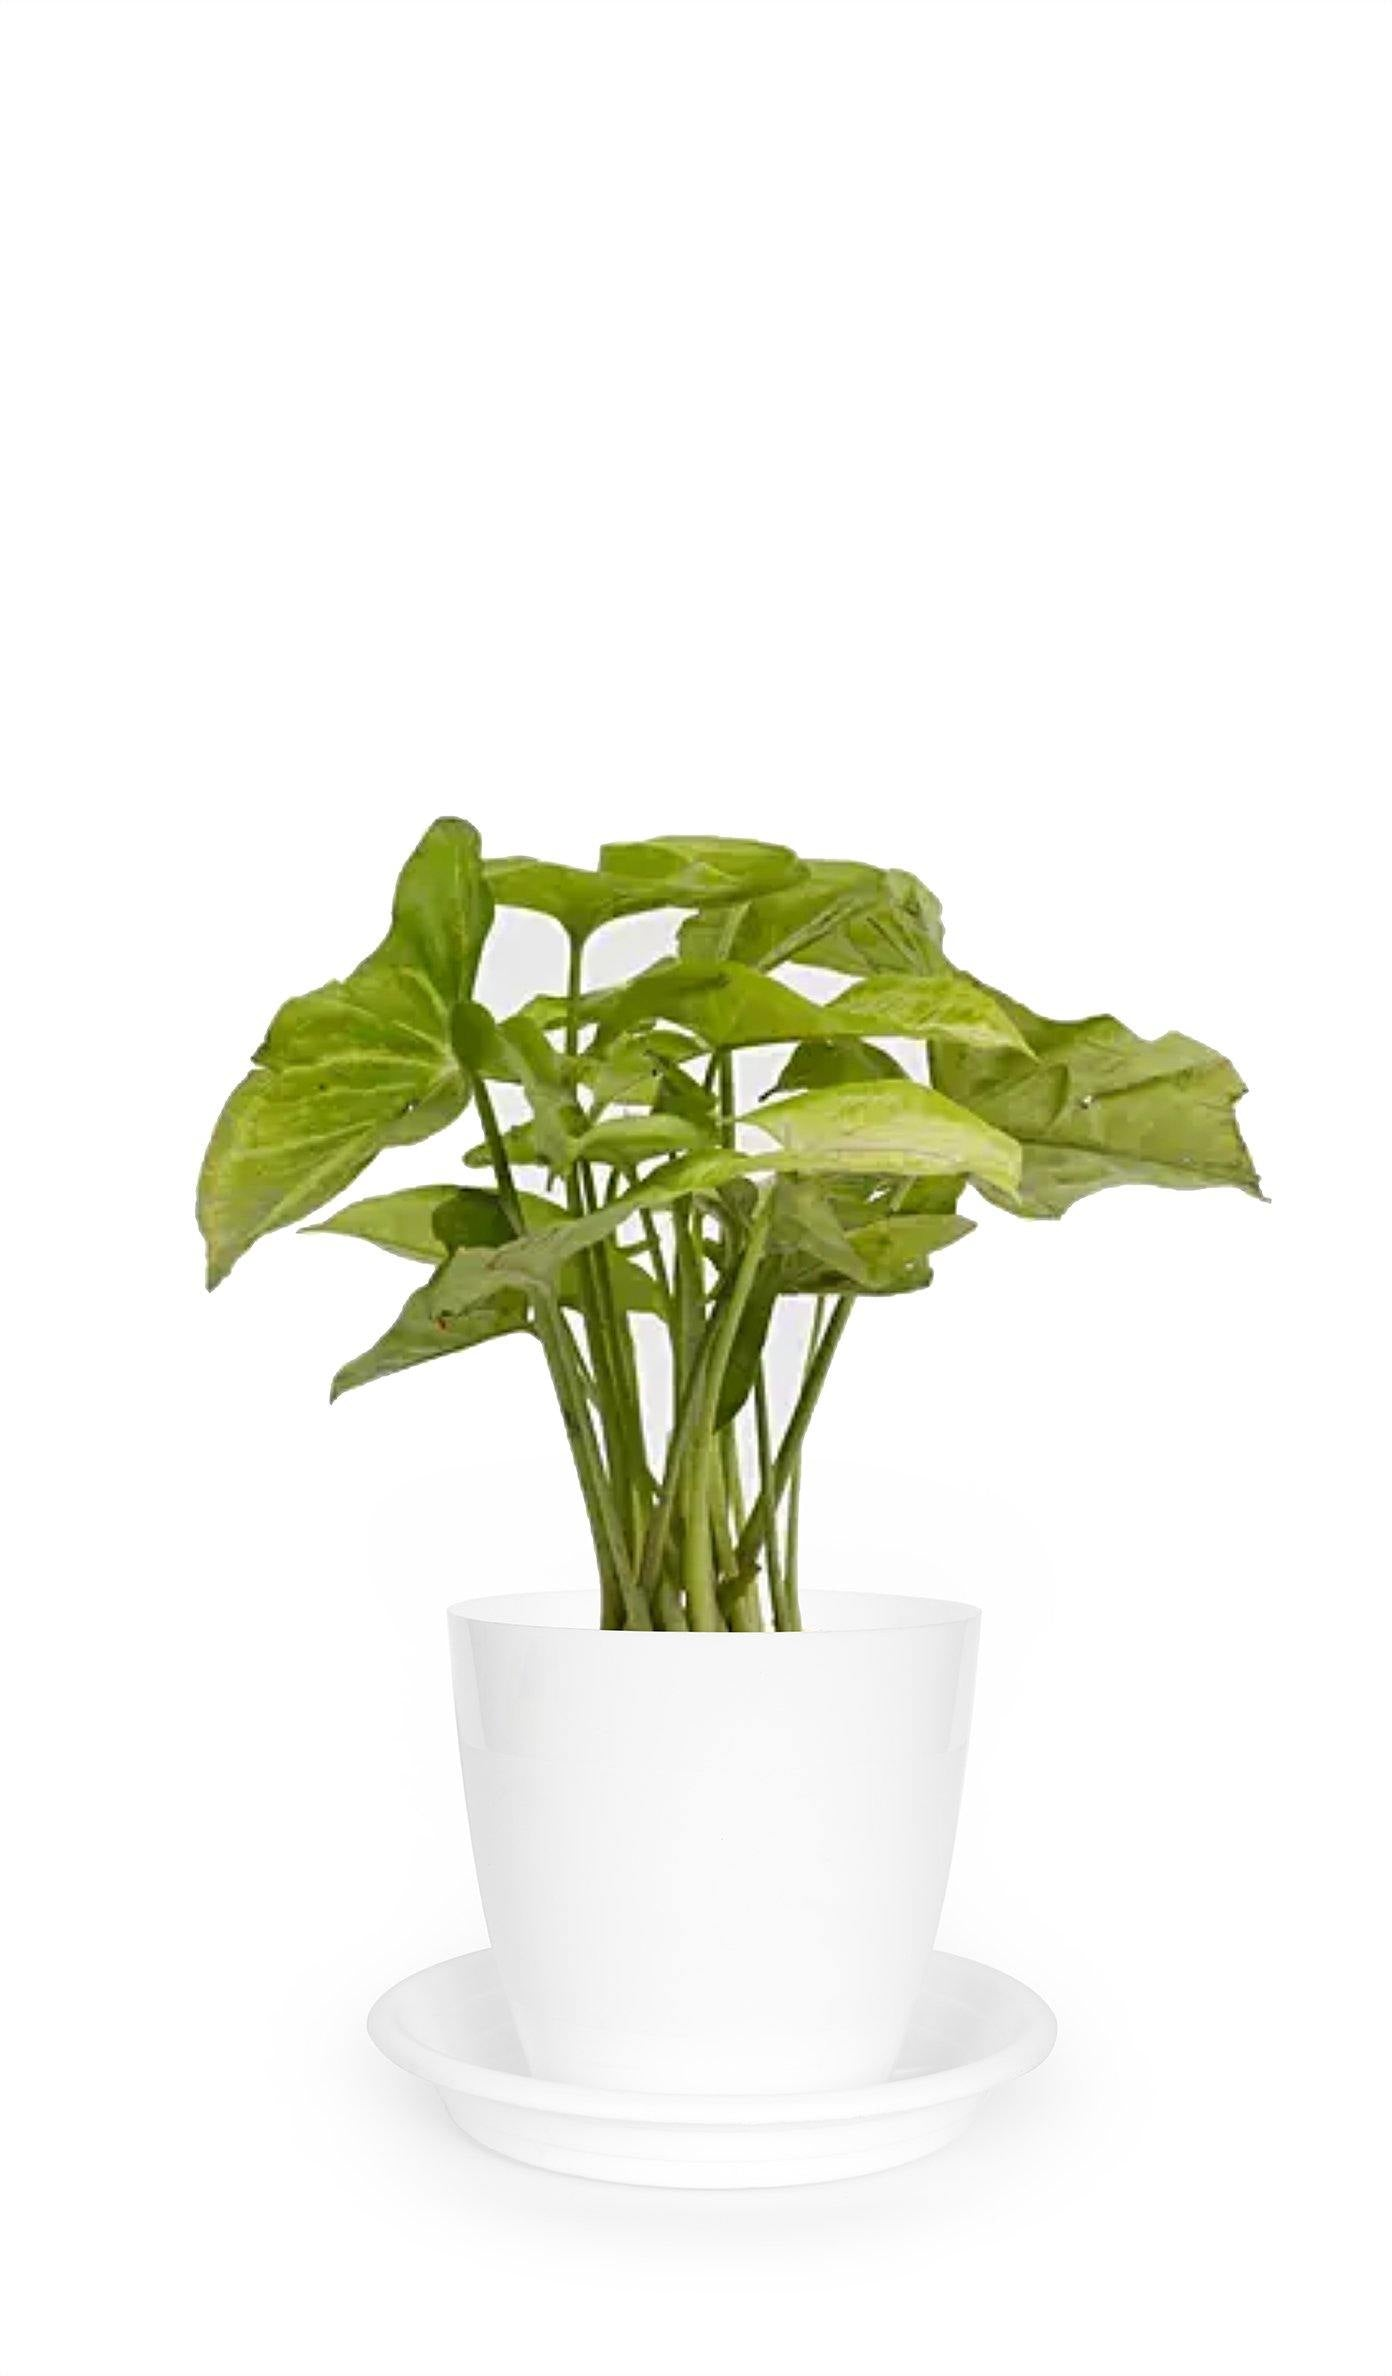 Syngonium Podophyllum (Green) - Growcerys Shop